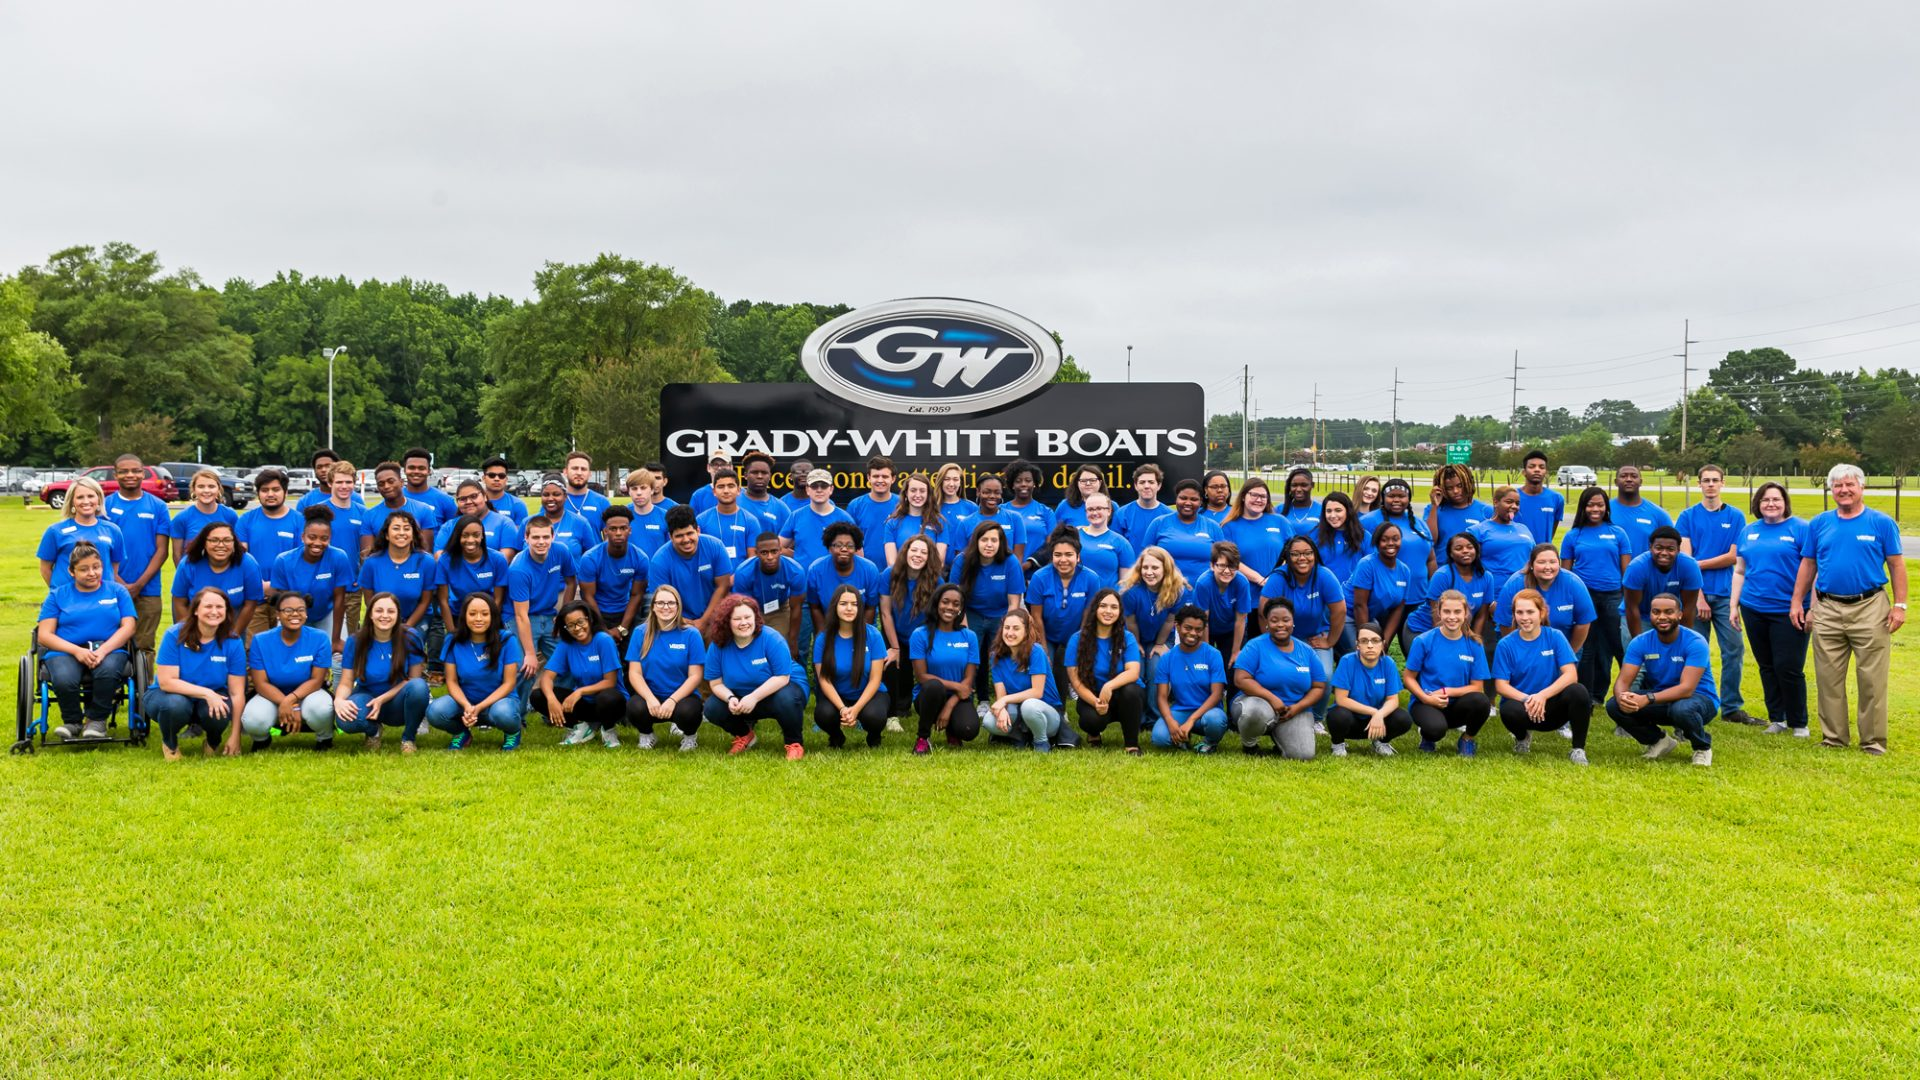 VISIONS staff and students pose for a group photo in front of the Grady-White Boats sign in Greenville.